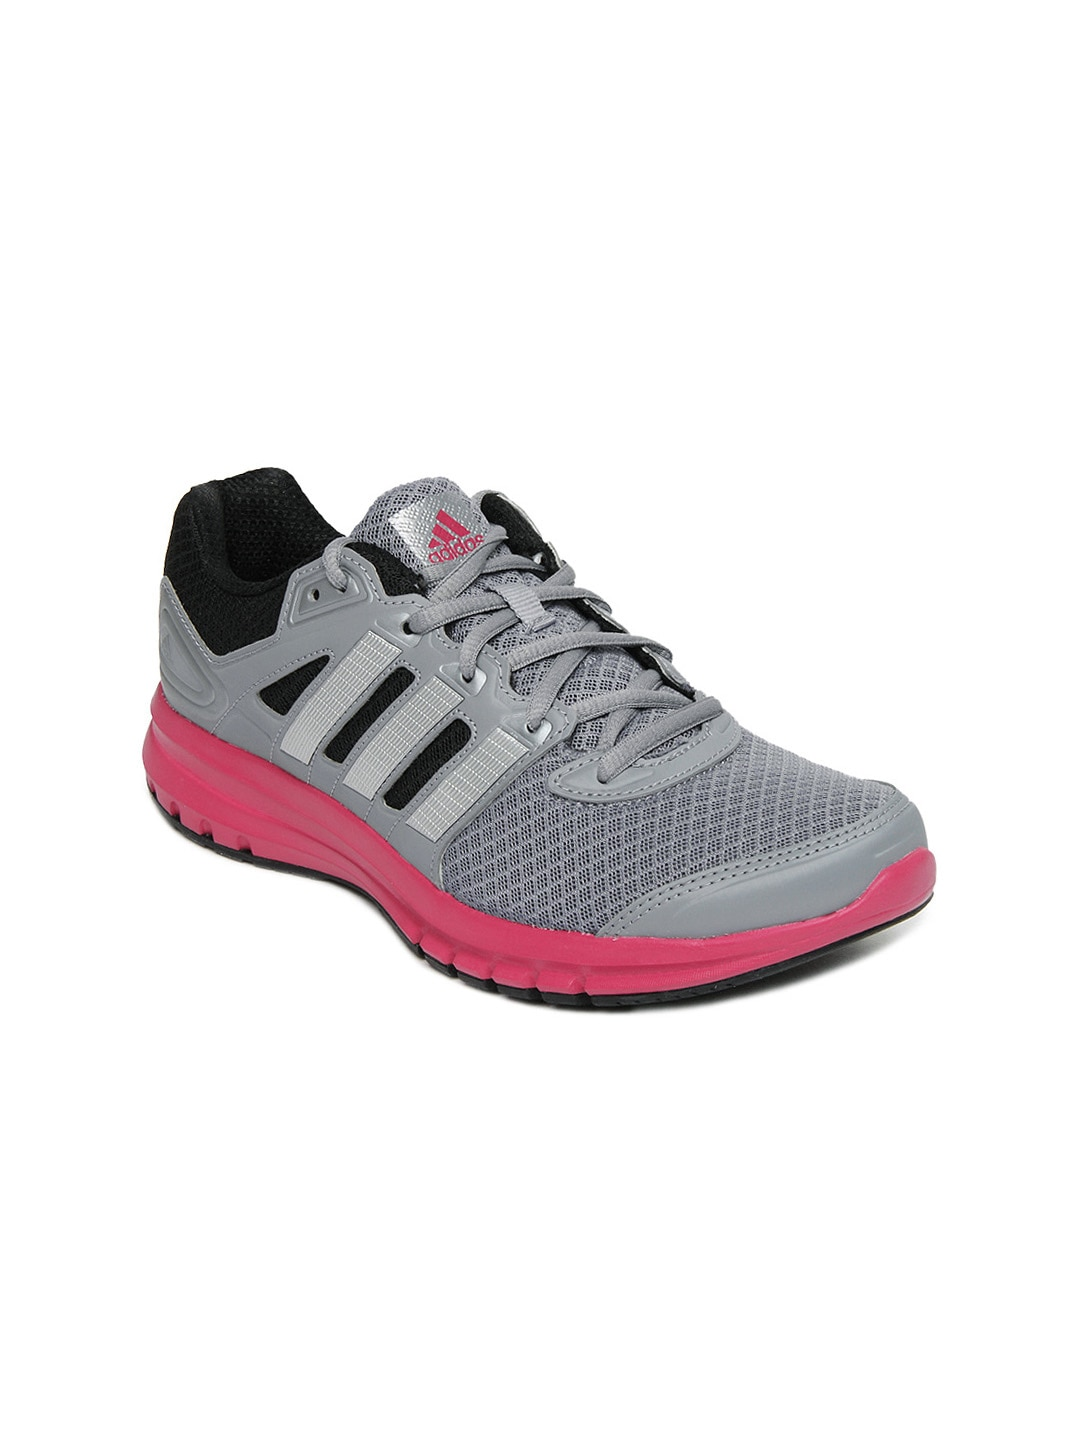 Adidas Adidas Women Grey & Black Duramo 6 W Sports Shoes (Multicolor)